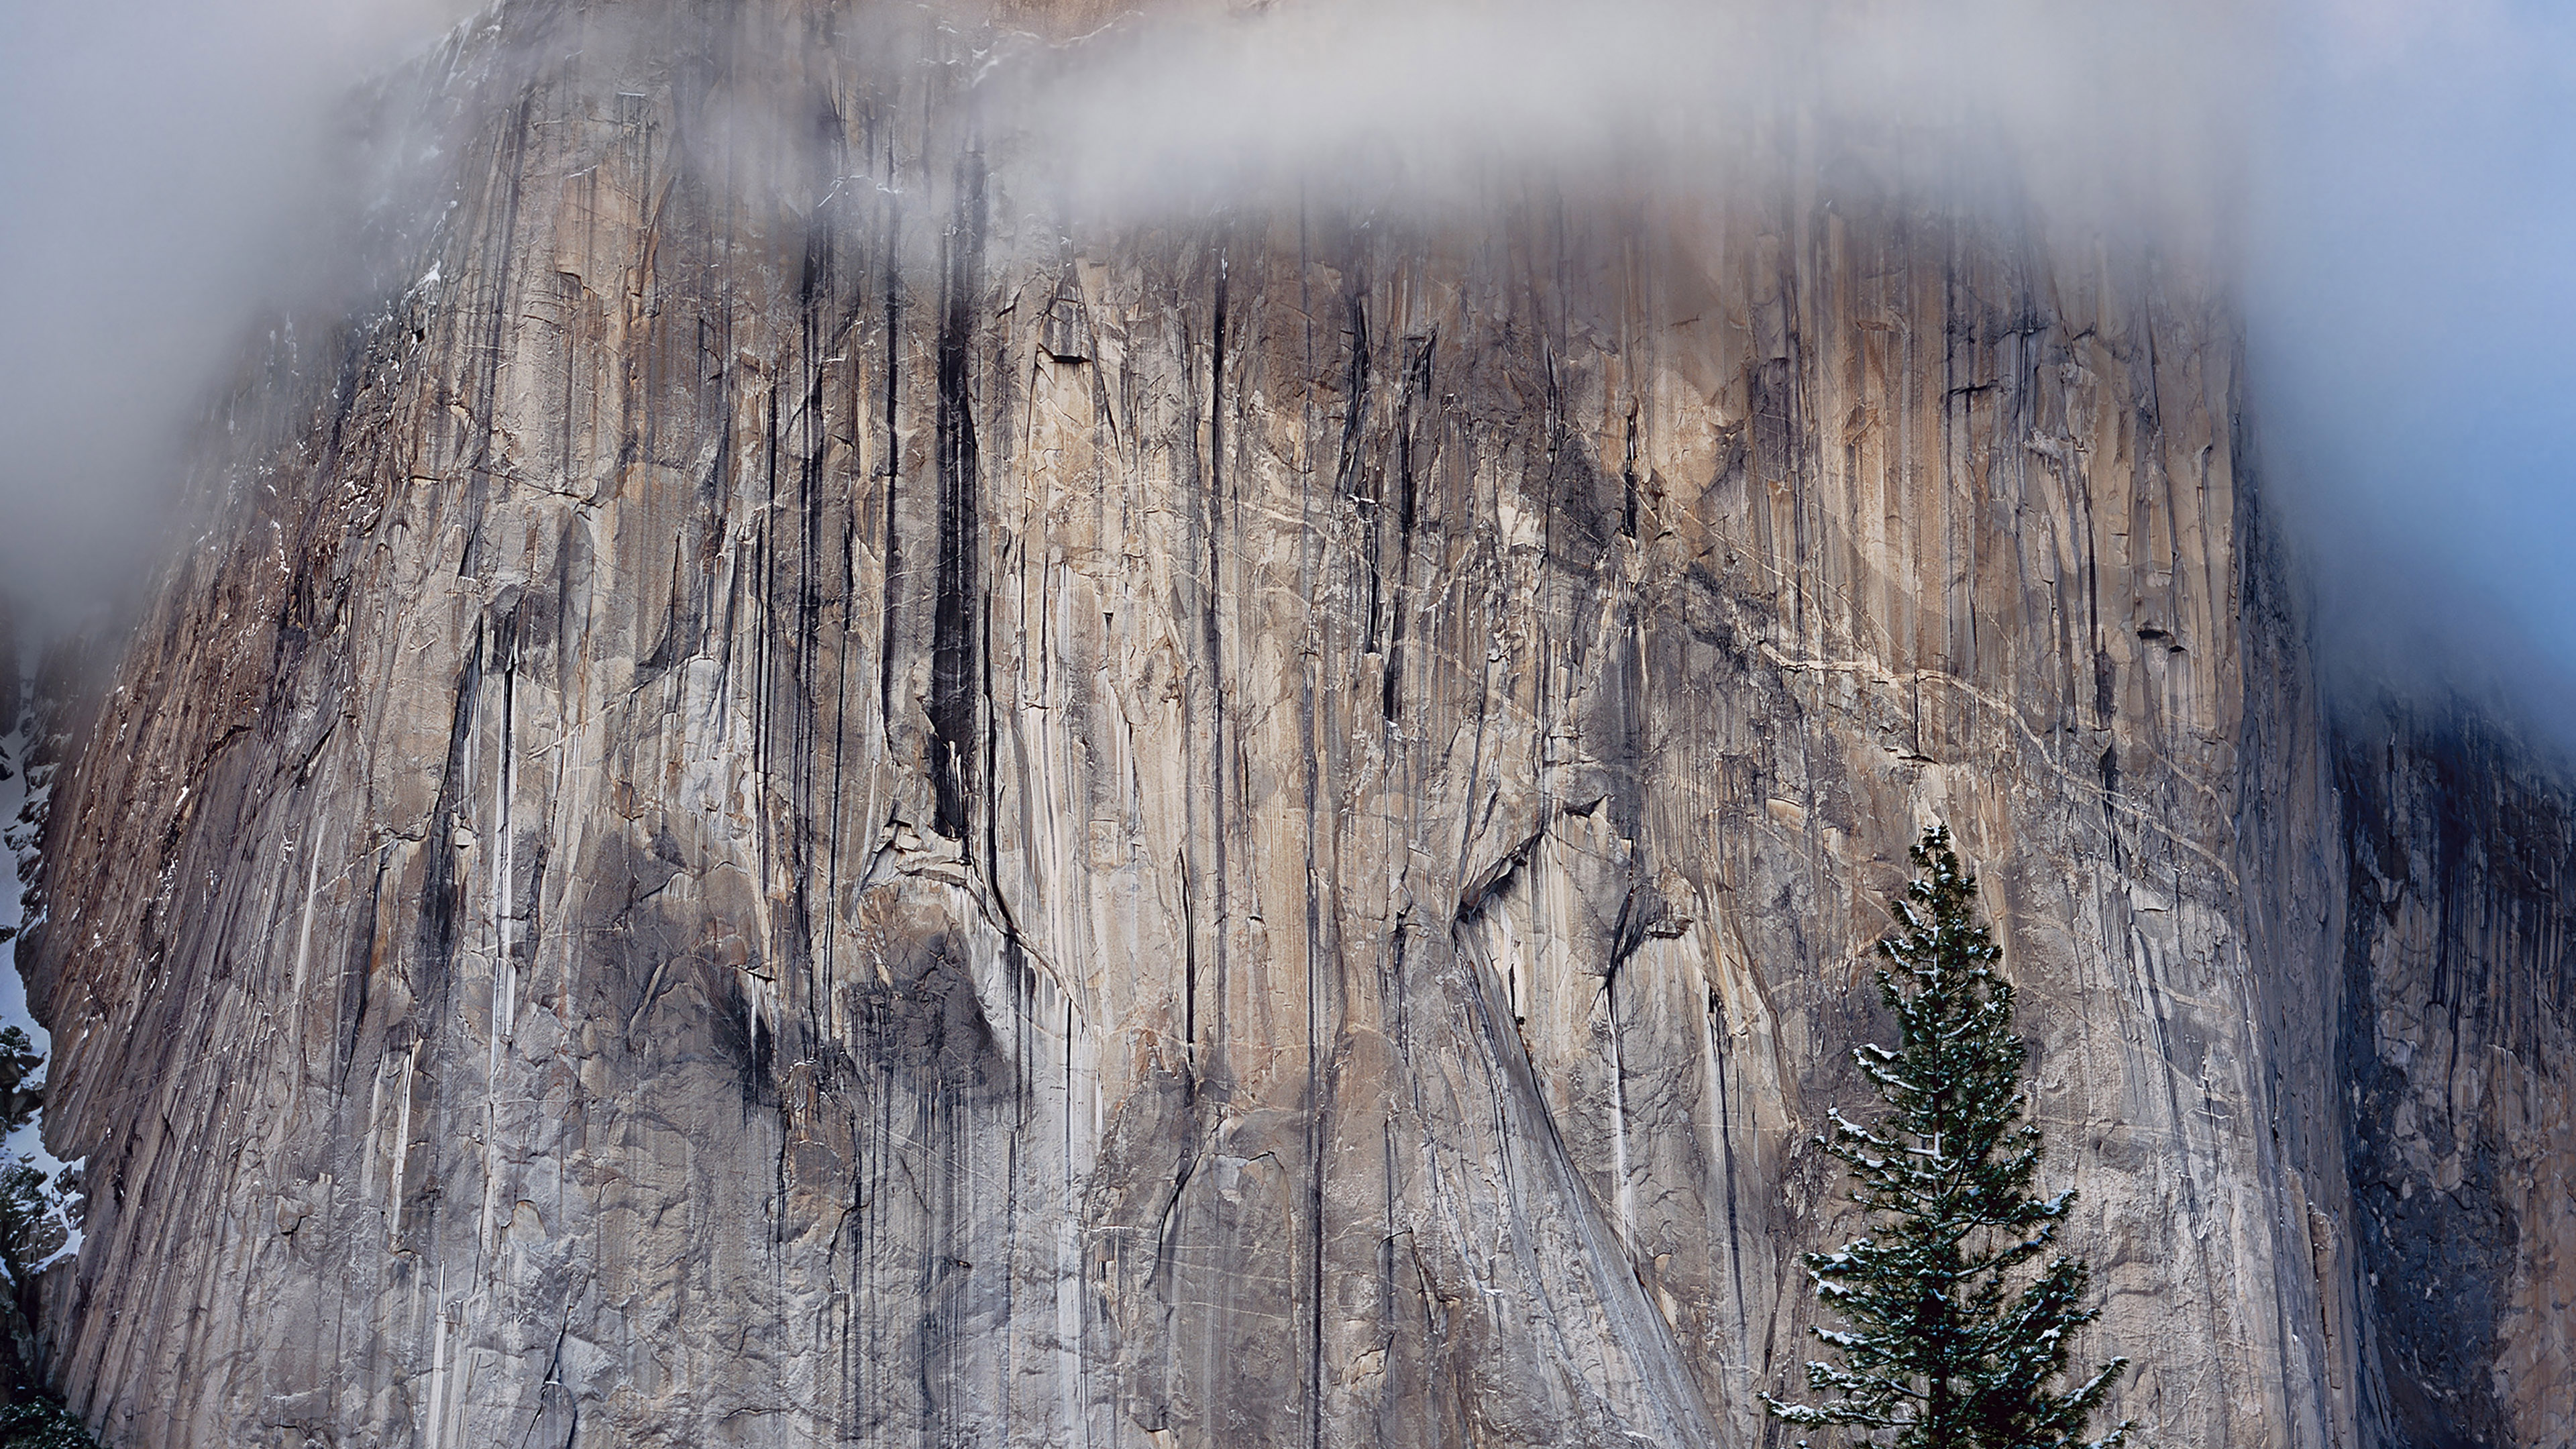 Desktoppapers Co Mg47 Os X Yosemite Wallpaper Apple